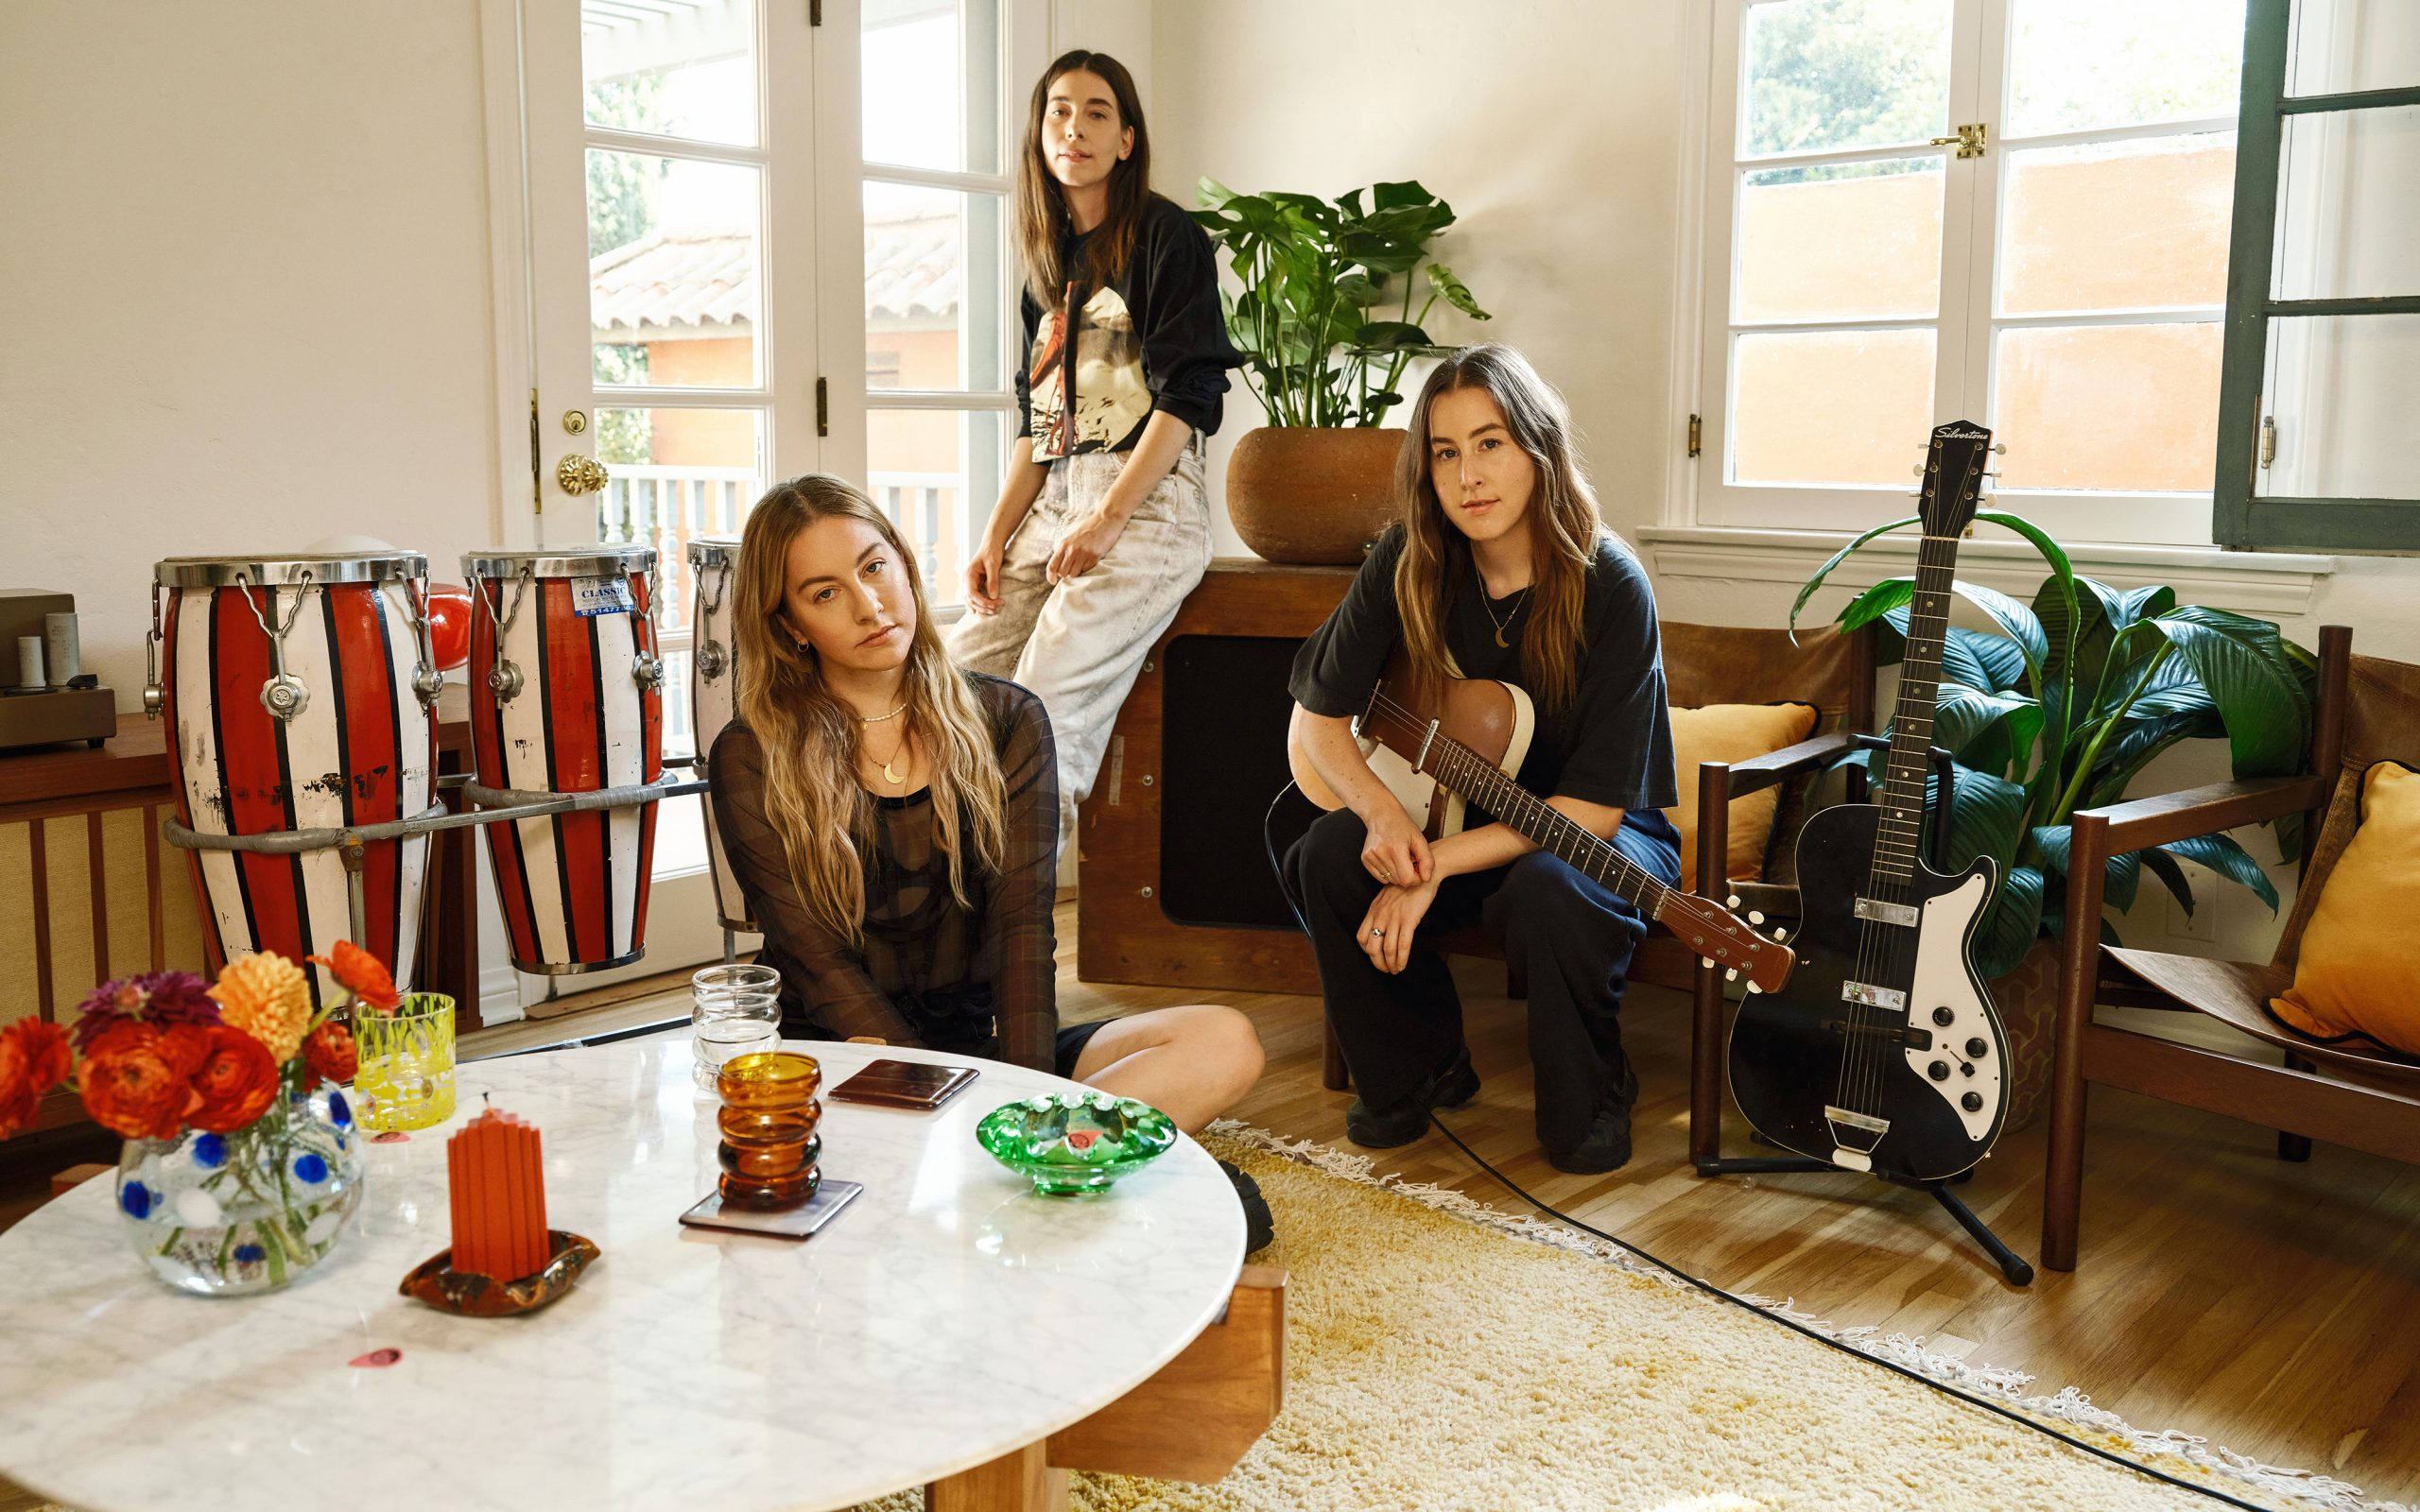 Haim Etsy: The Girl Group Releases a Home Goods Collection